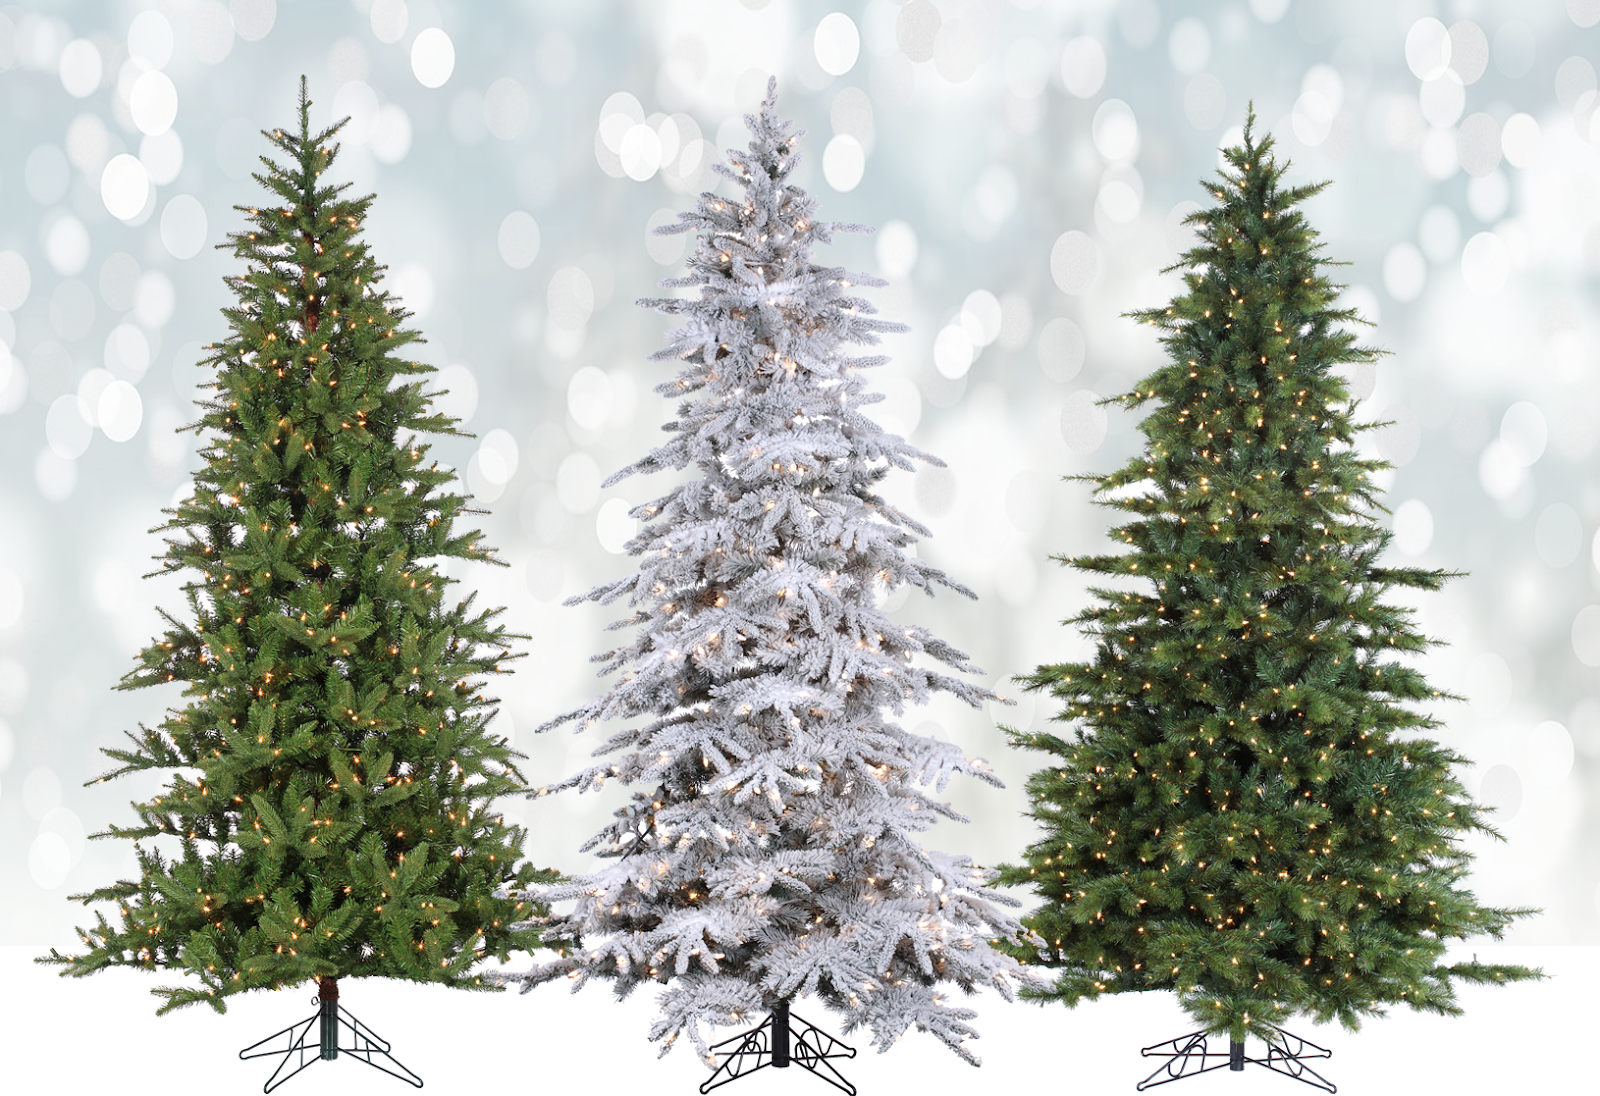 Christmas Trees For Sale.Ben Franklin Crafts And Frame Shop O Christmas Tree Sale